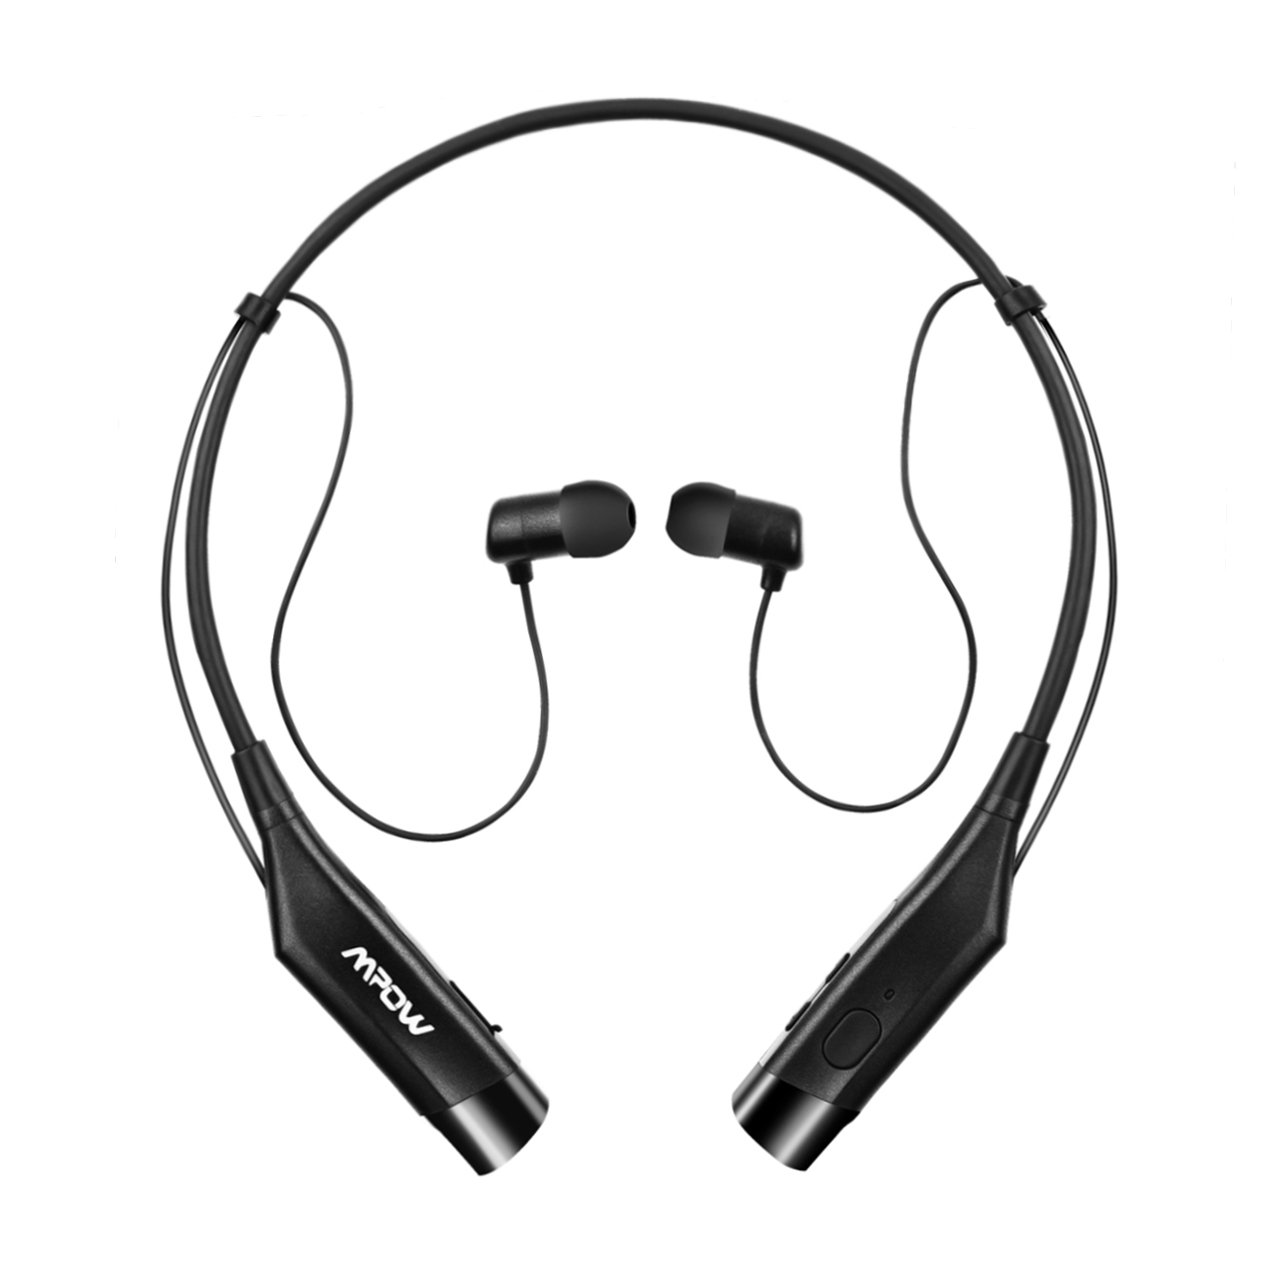 mpow bluetooth headphones v4 1 vibrating call alert wireless neckband. Black Bedroom Furniture Sets. Home Design Ideas